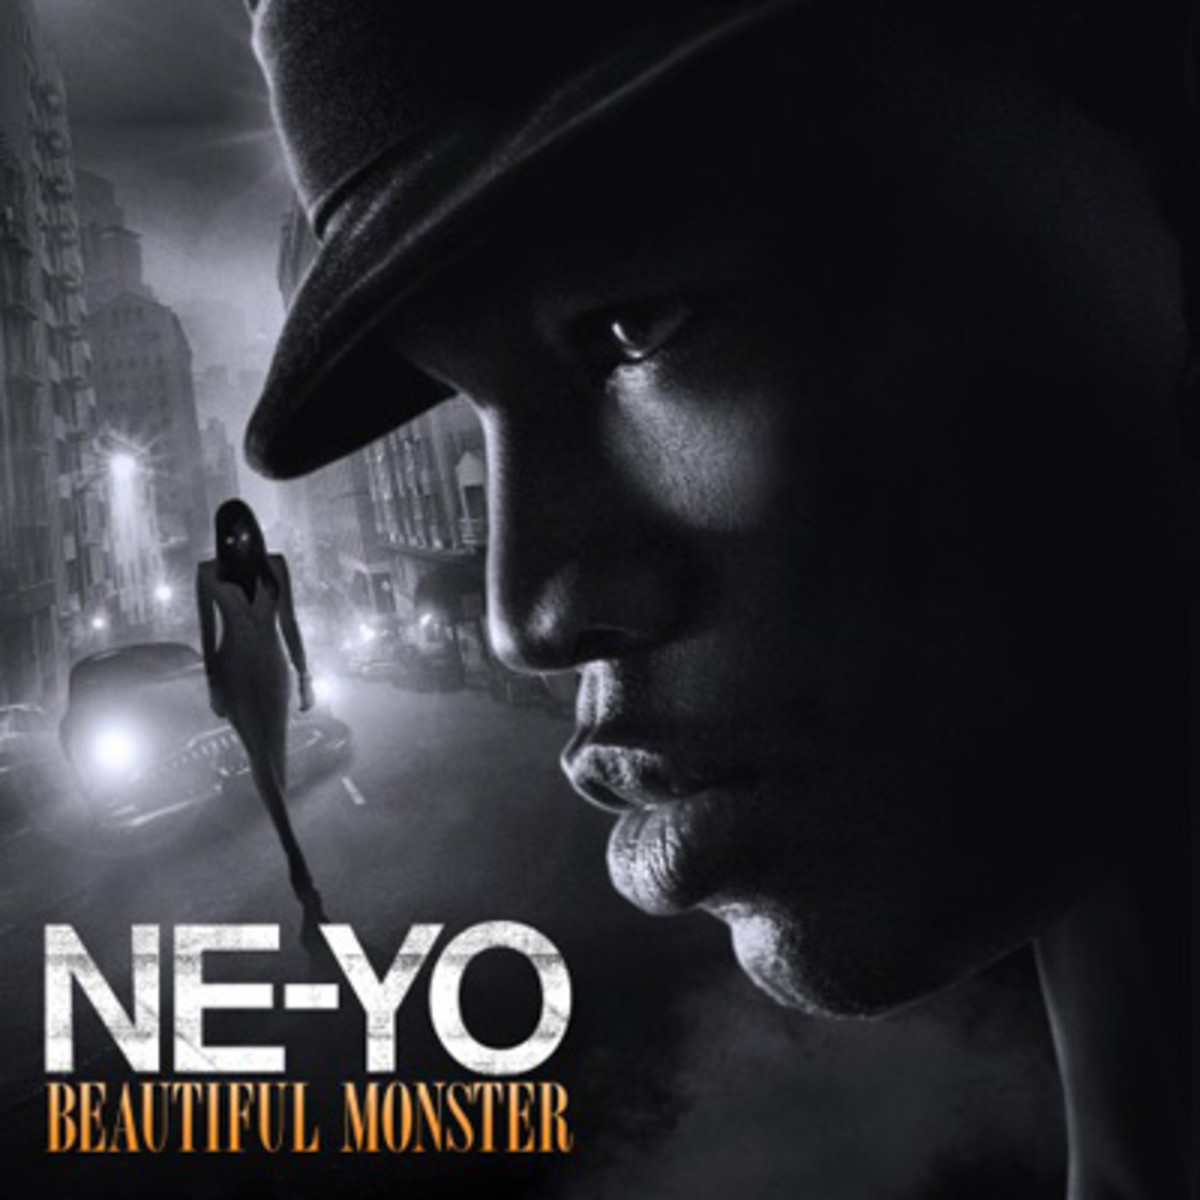 neyo-beautifulmonster.jpg